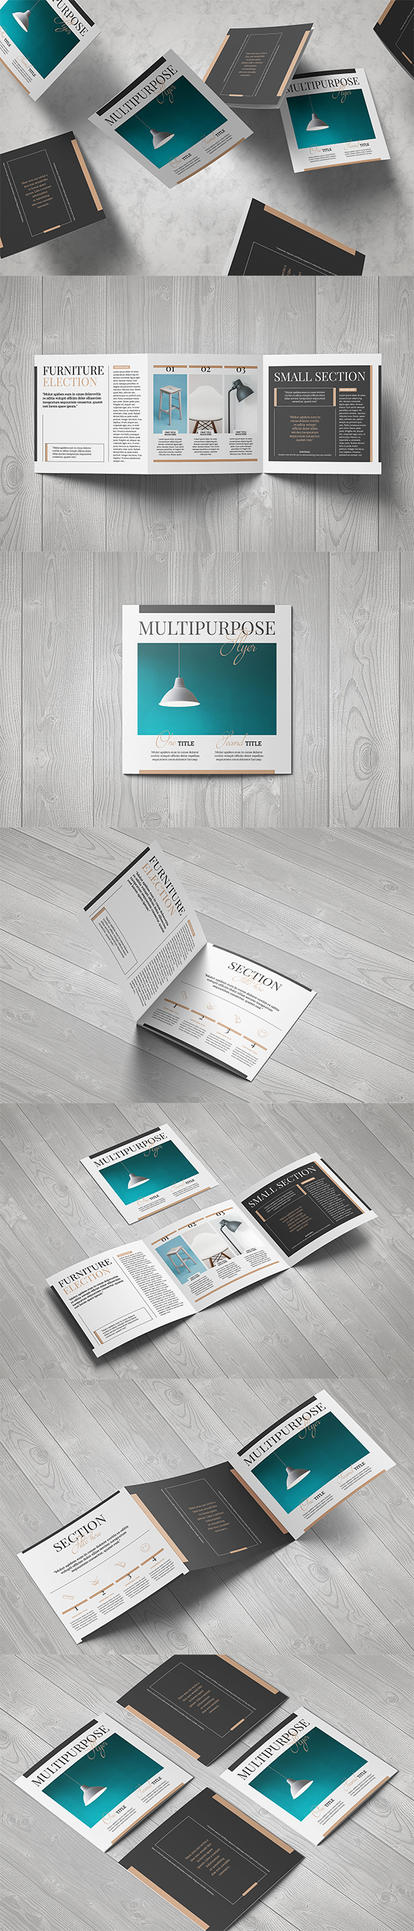 Multipurpose Square Brochure by luuqas